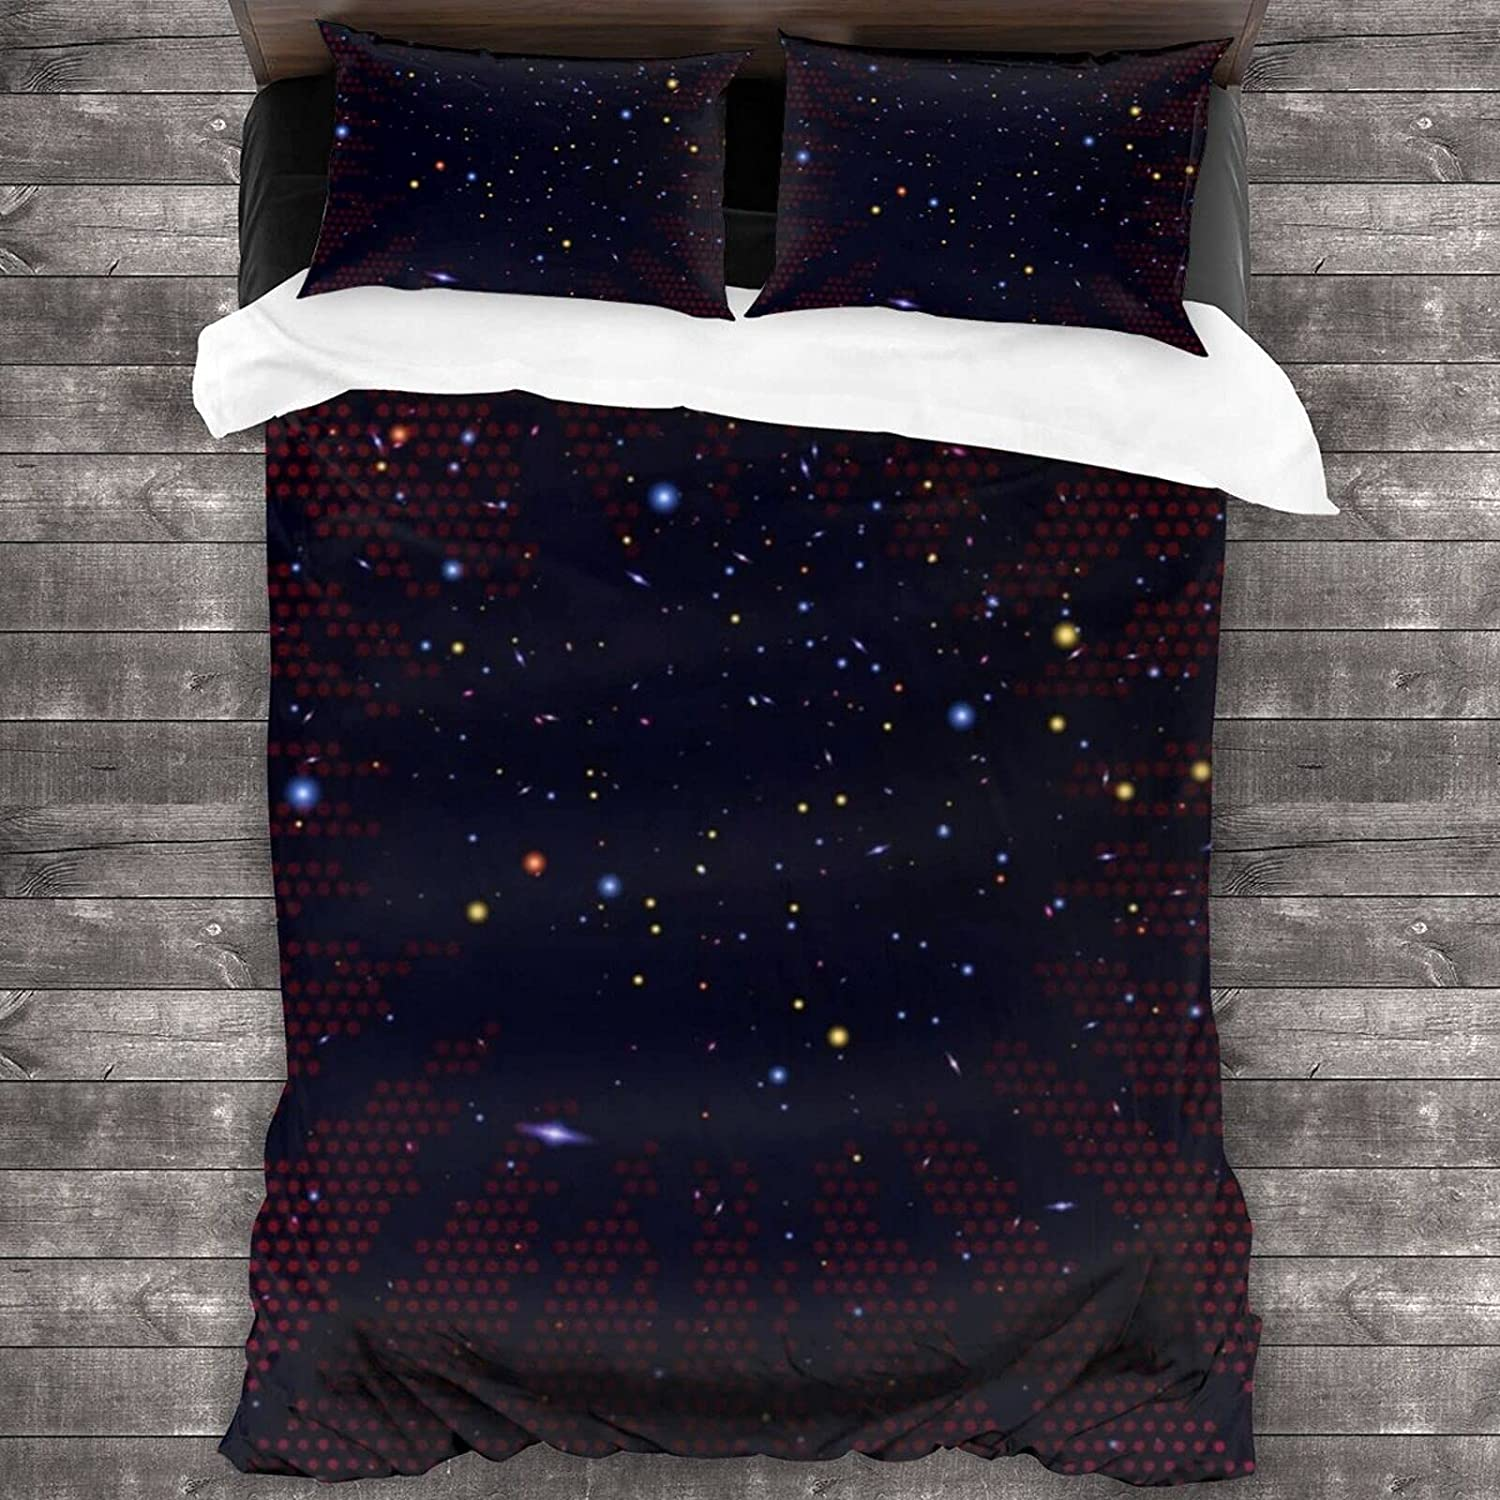 Pssmmal Color Miami Mall Stars 3 Pieces Bedding OFFer Comforter Ki Queen for Sets